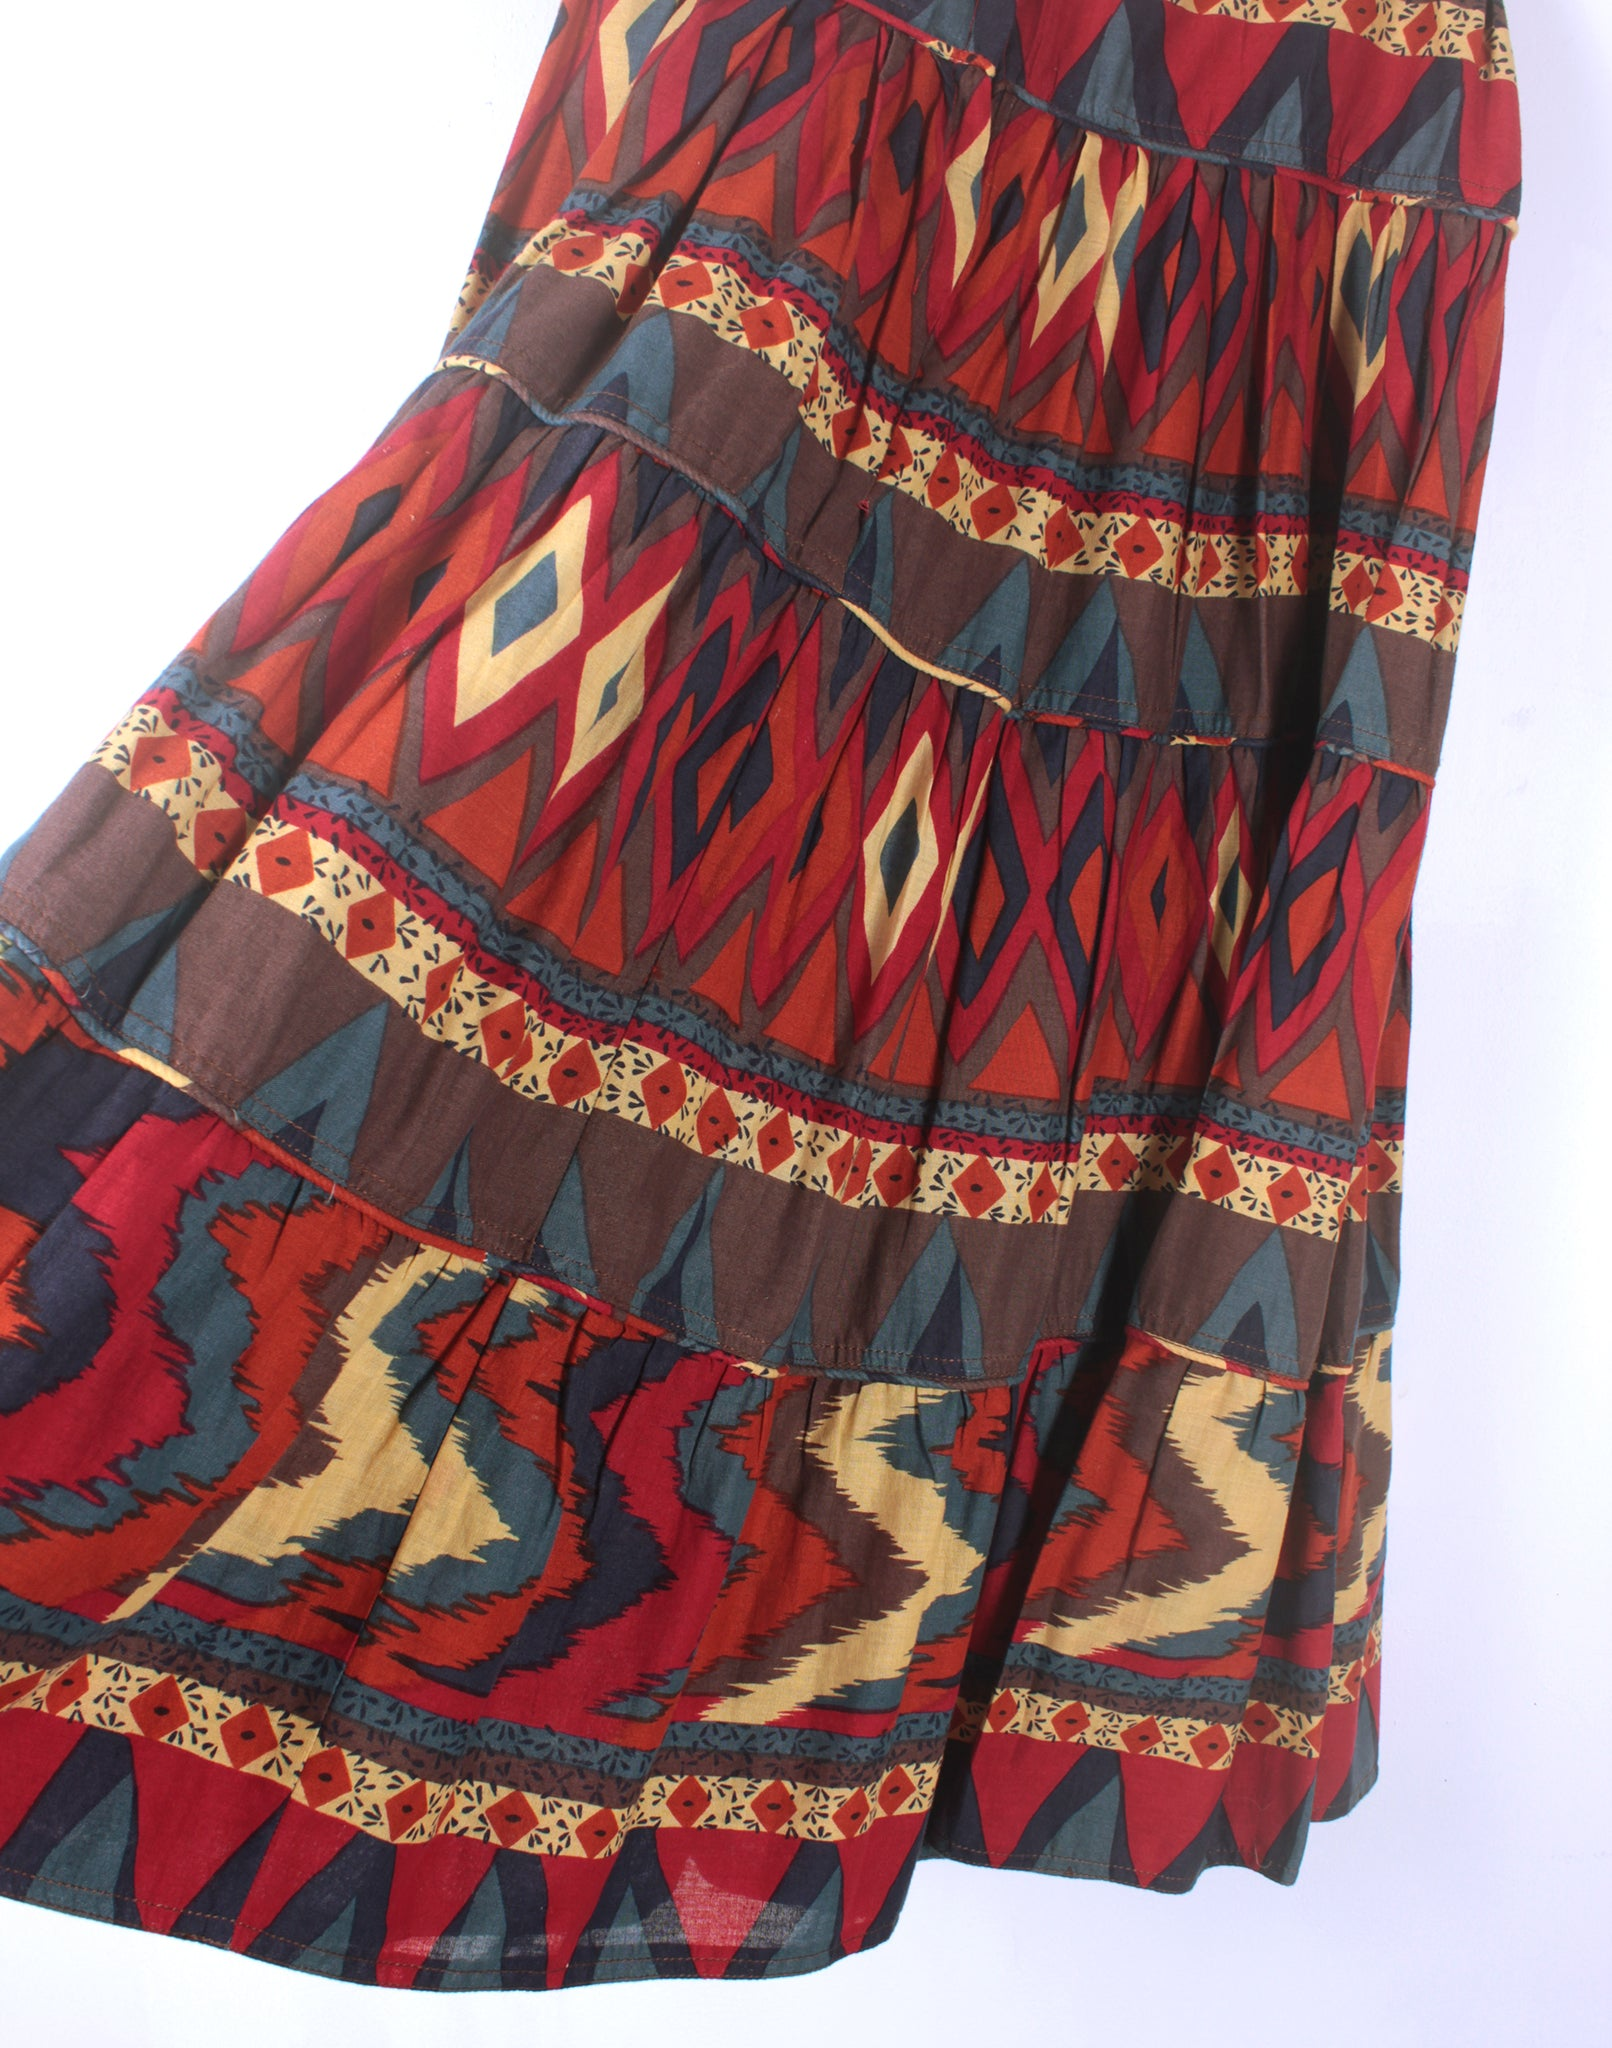 Vintage 80's Bright Red Blue Cotton Tiered Prairie Skirt